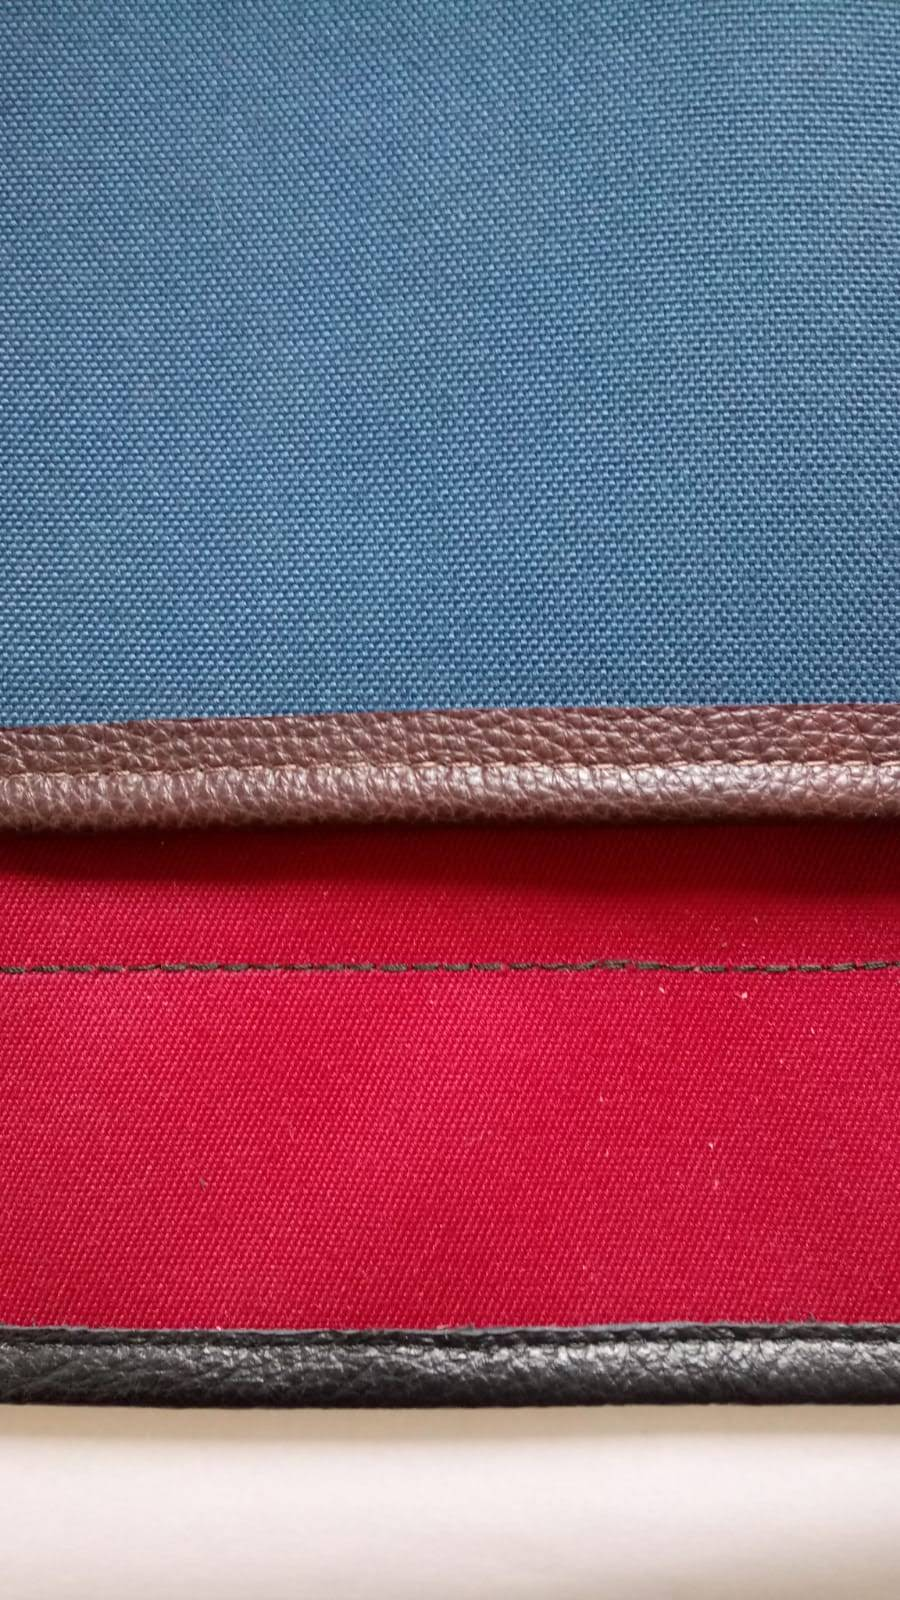 Add Leather Binding to Mohair Half-Tonneau Cover